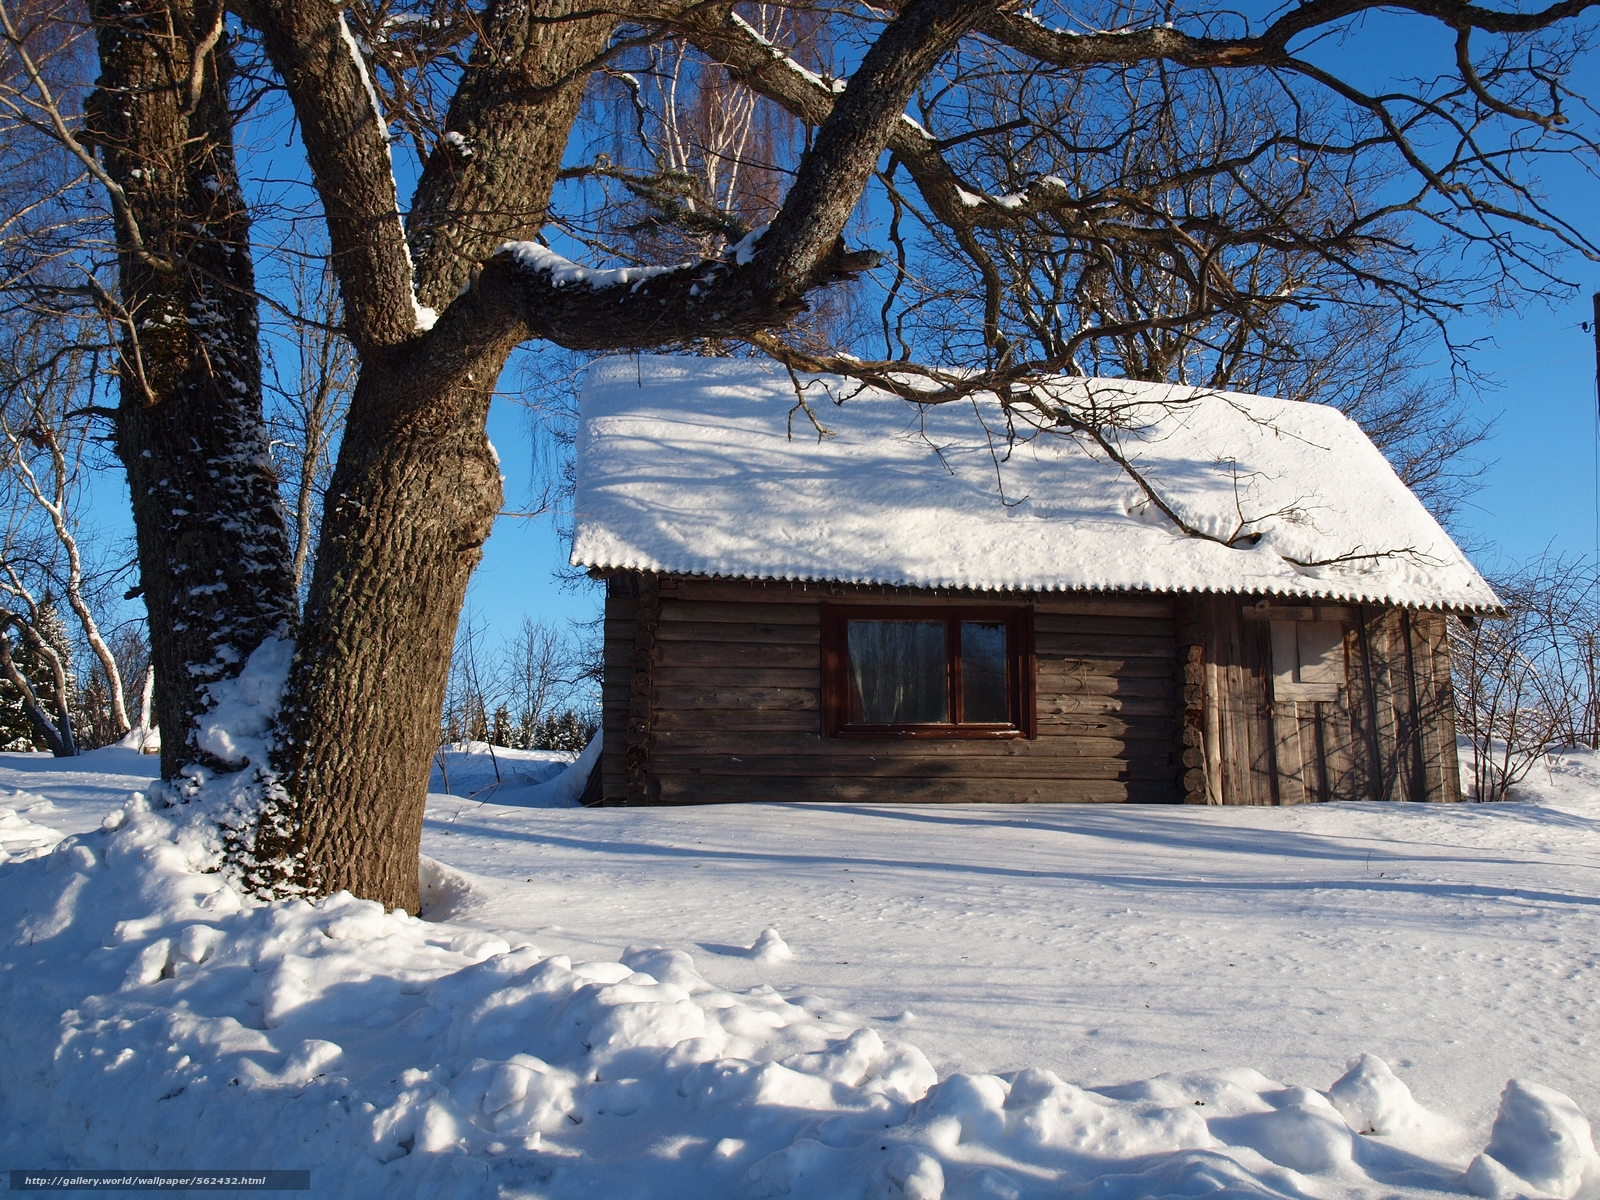 Download wallpaper winter snow tree cabin desktop wallpaper in 1600x1200